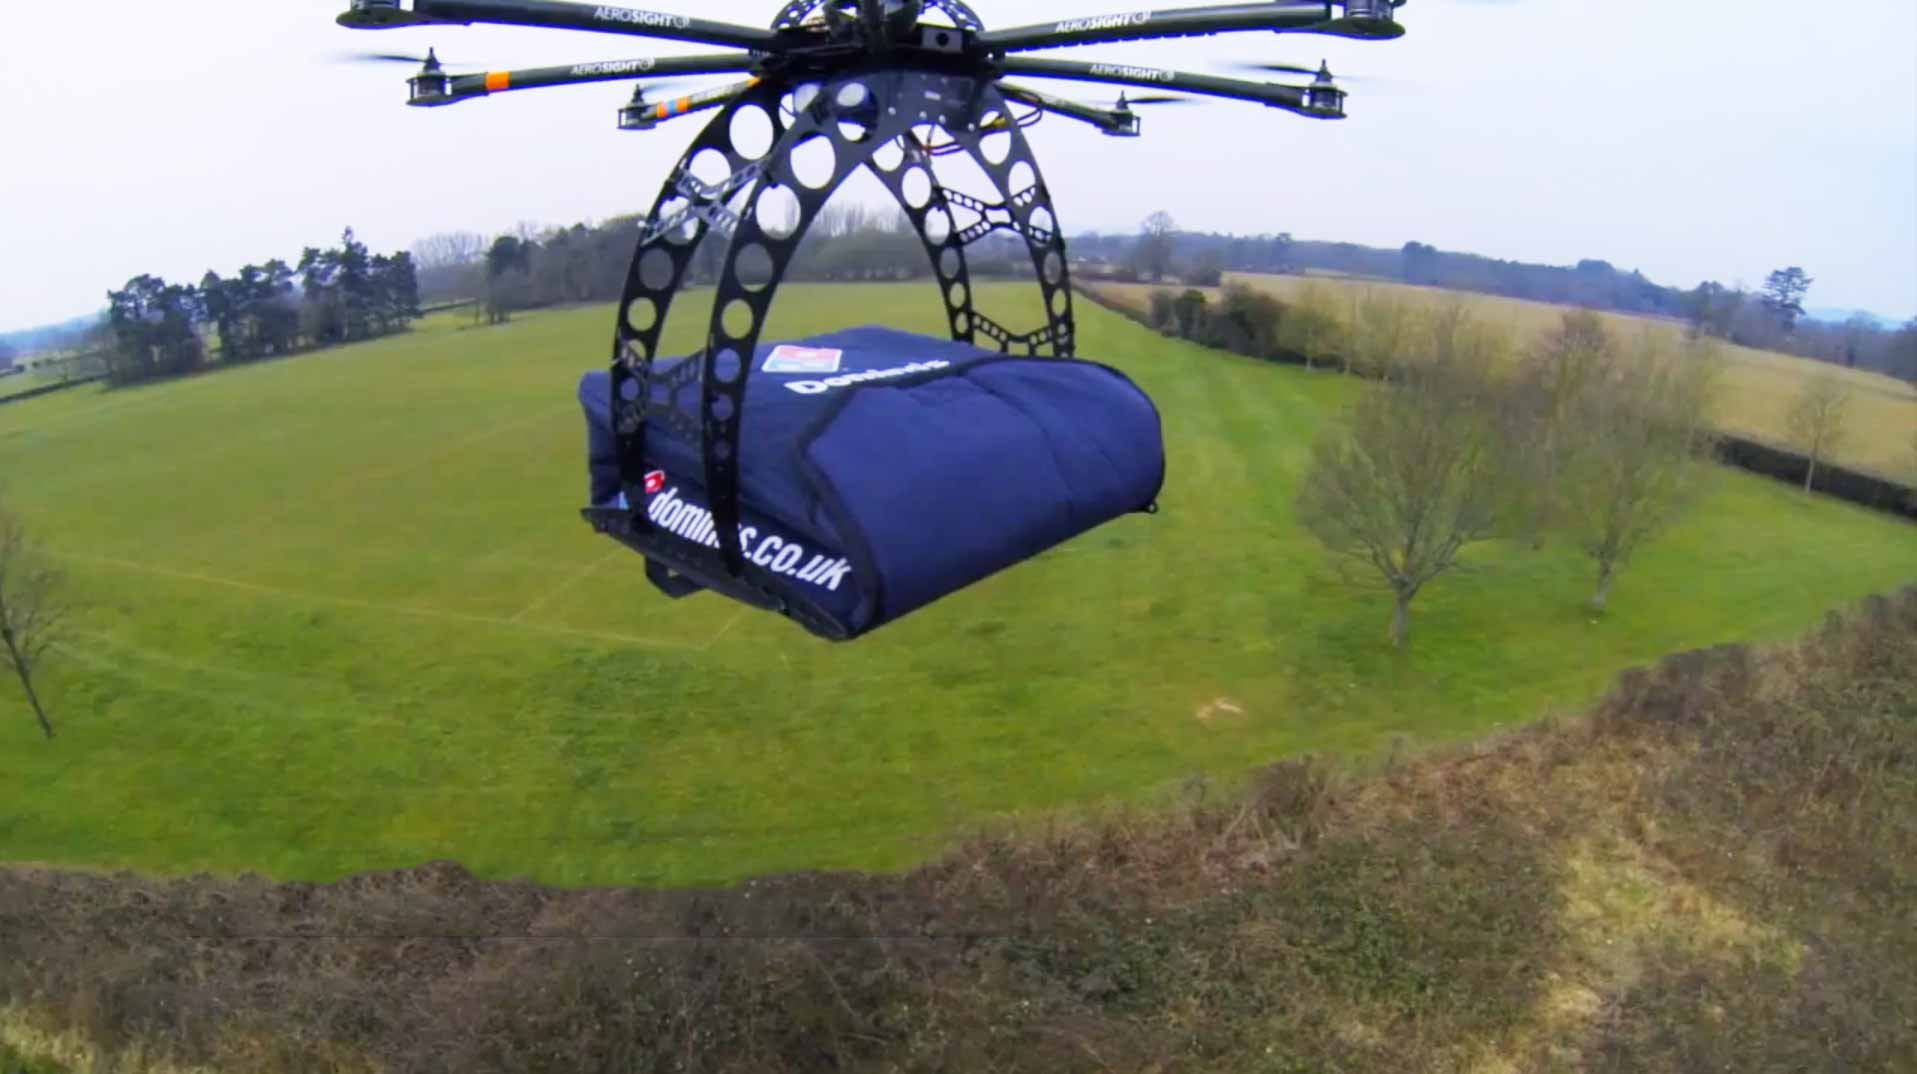 The First Dominos Pizza Drone Delivery Was A Success Marking Unprecedented Laziness